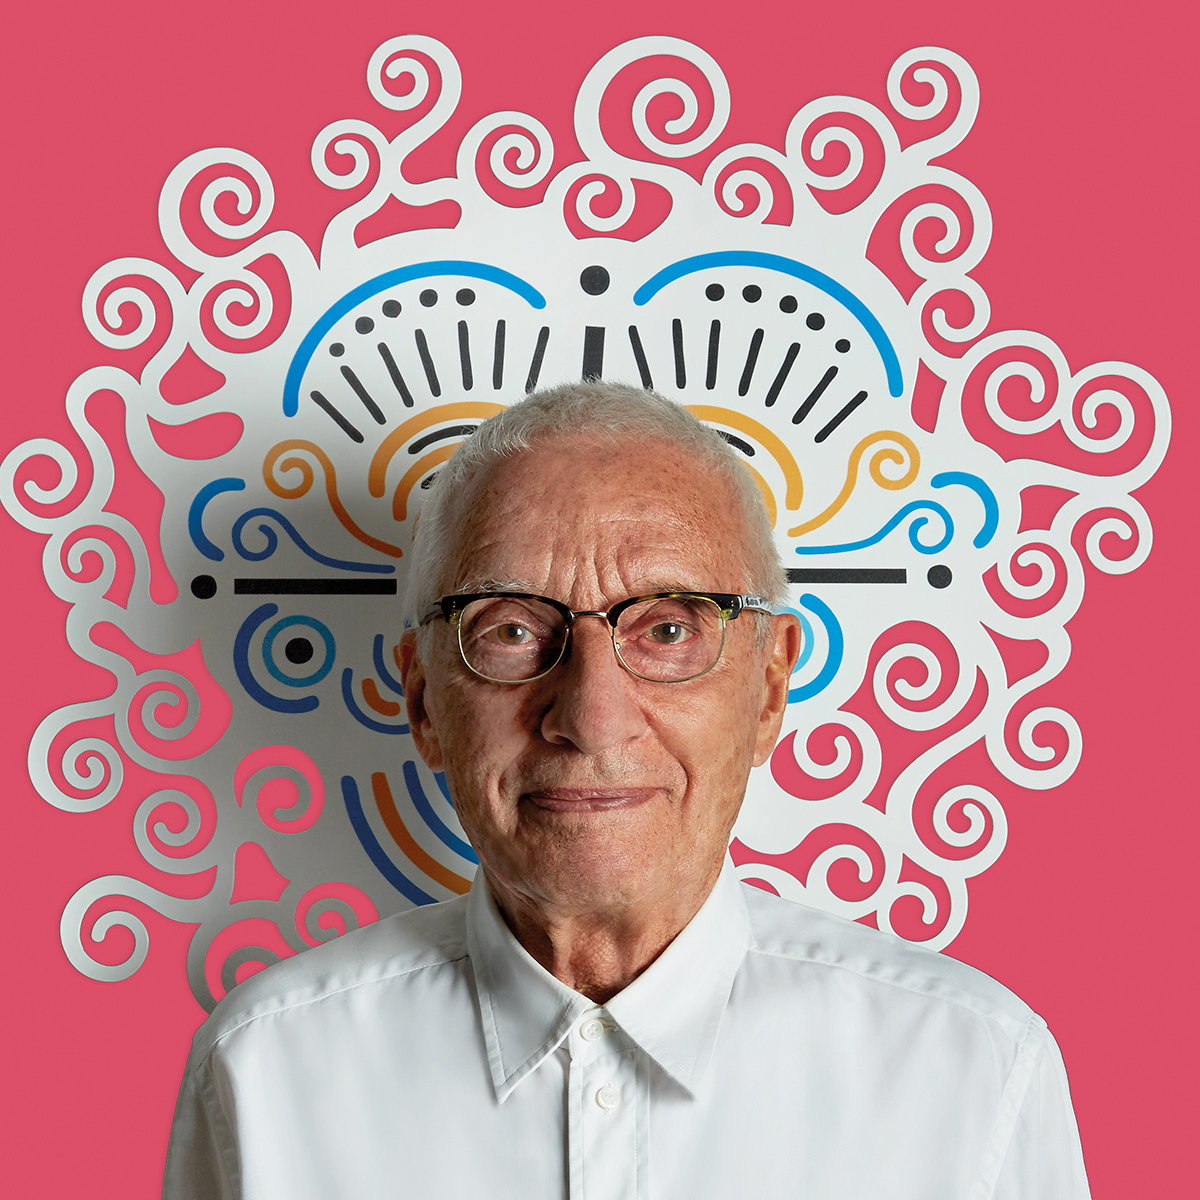 Mondo Mendini - The World of Alessandro Mendini at Groninger Museum